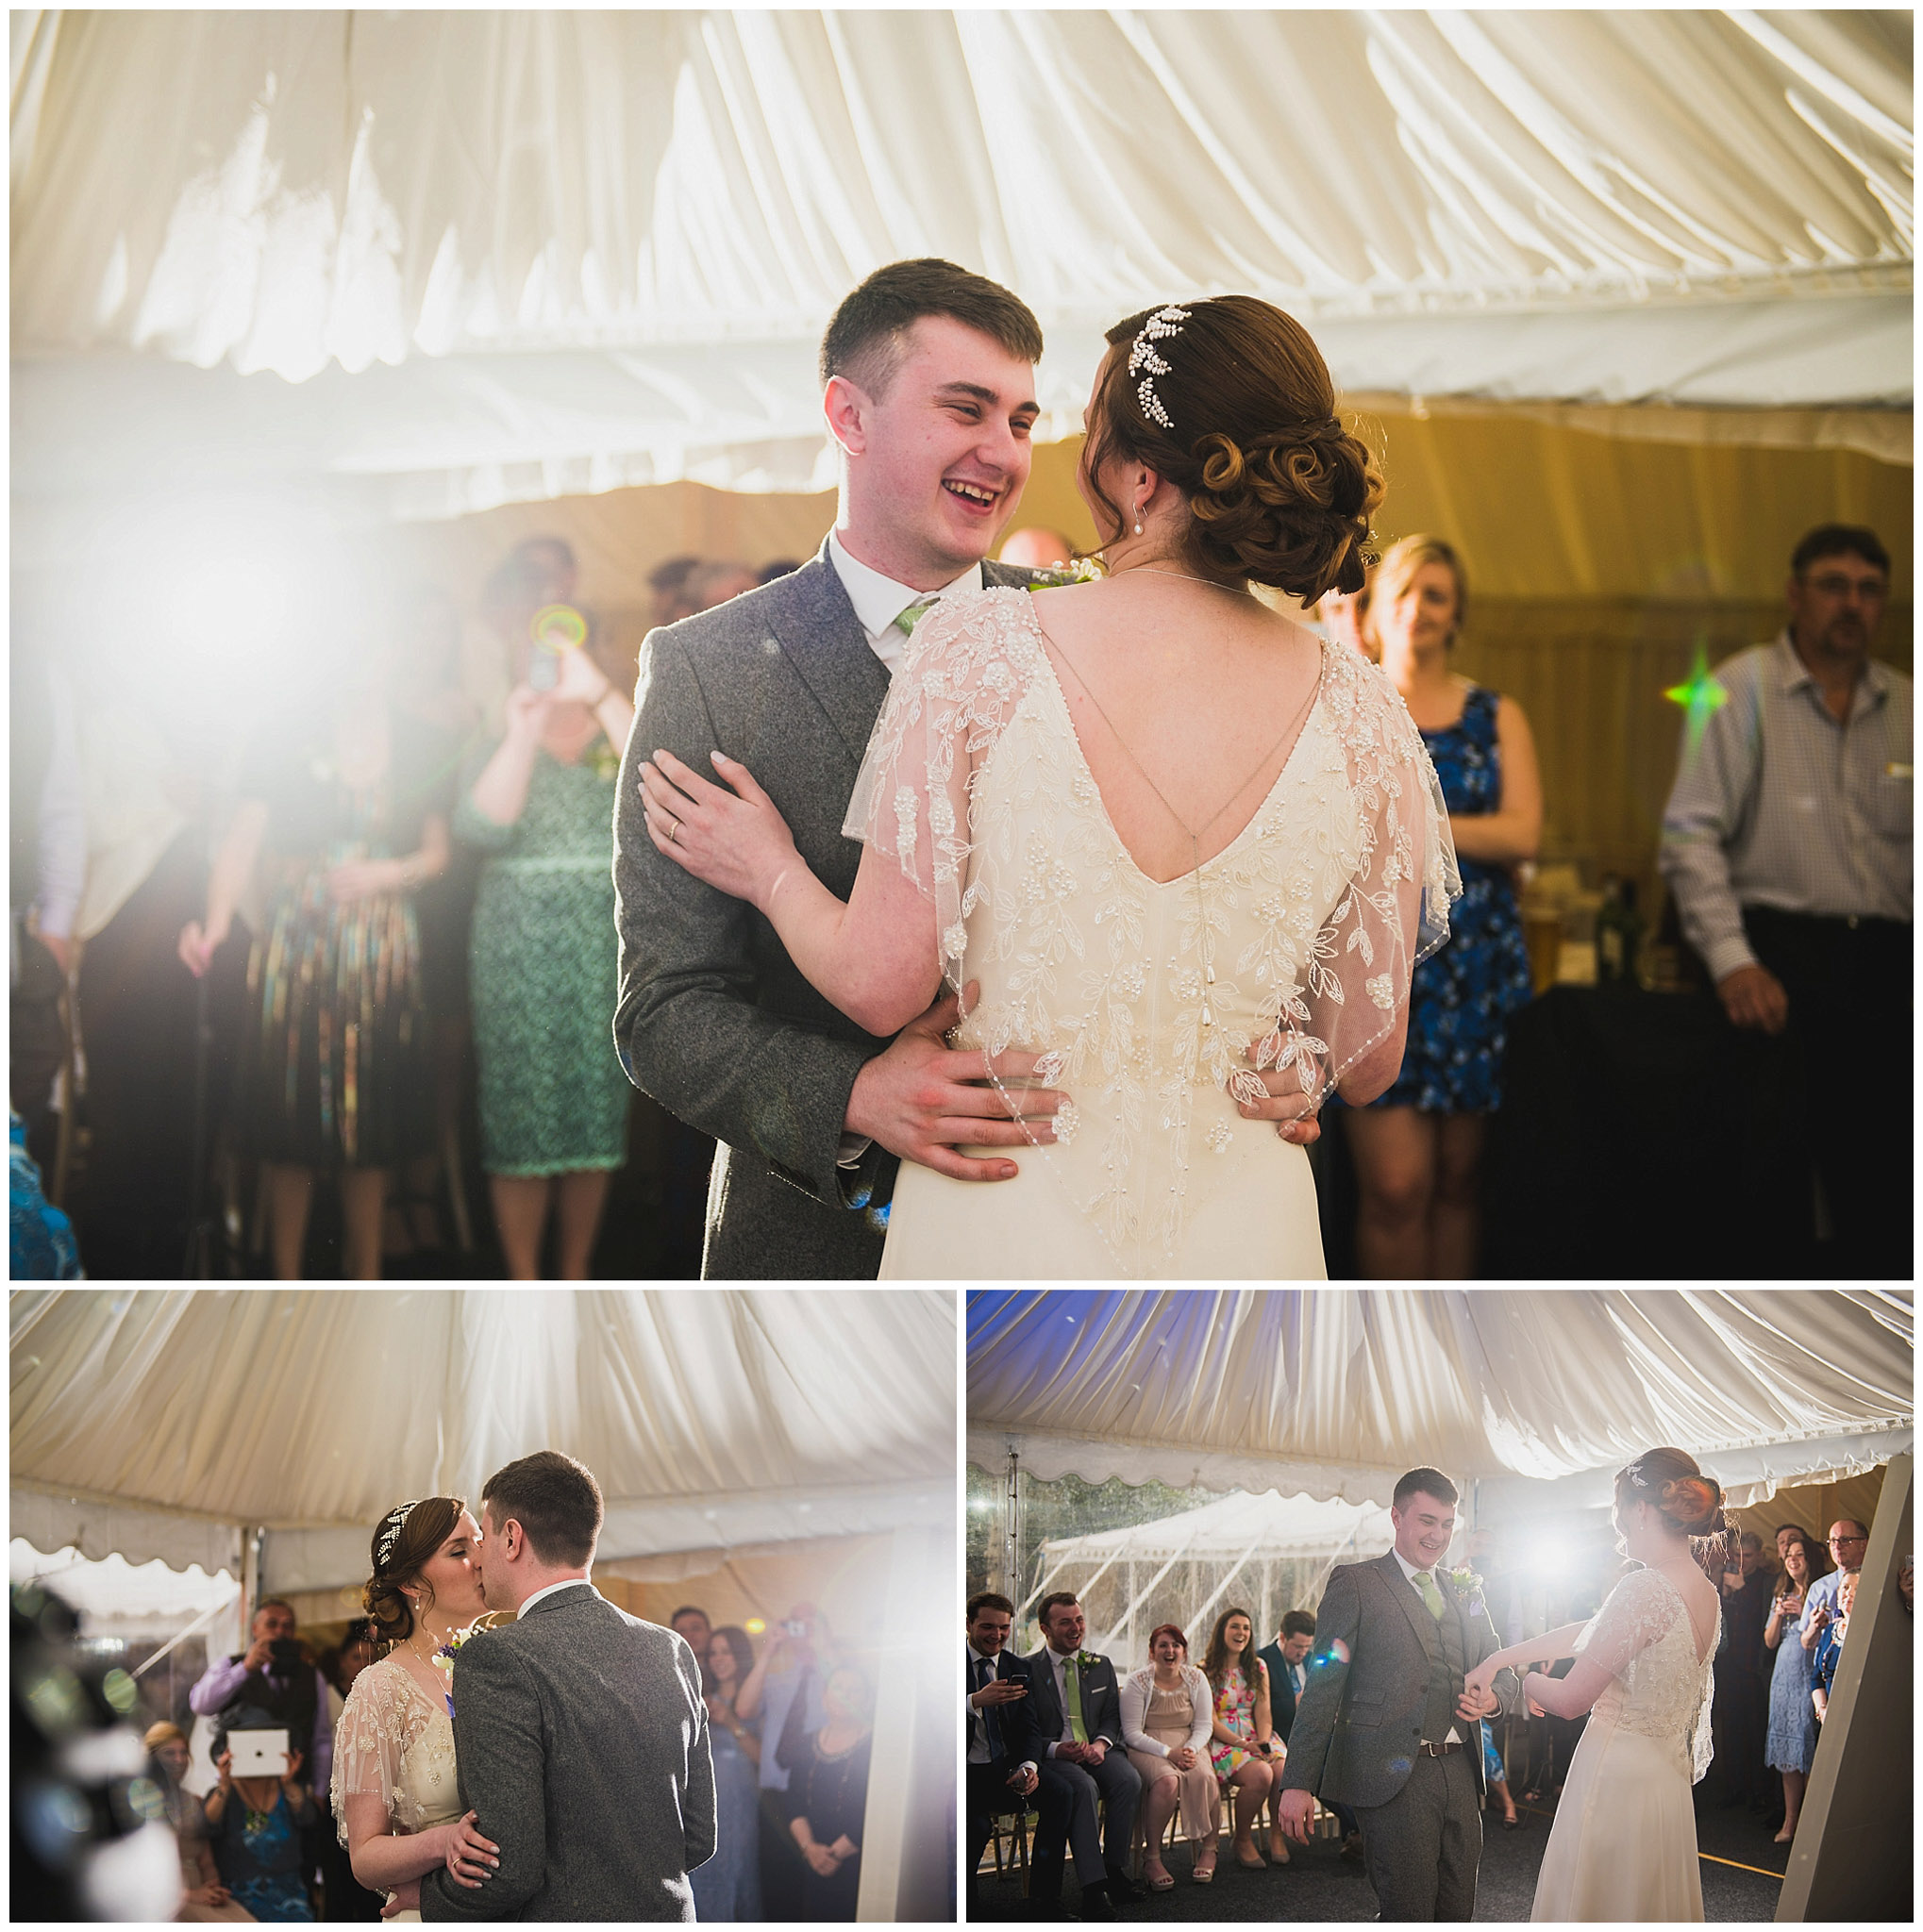 Sarah-&-Dan-The-Old-Vicarage-Wedding-Venue-Dorset-Photographer-40